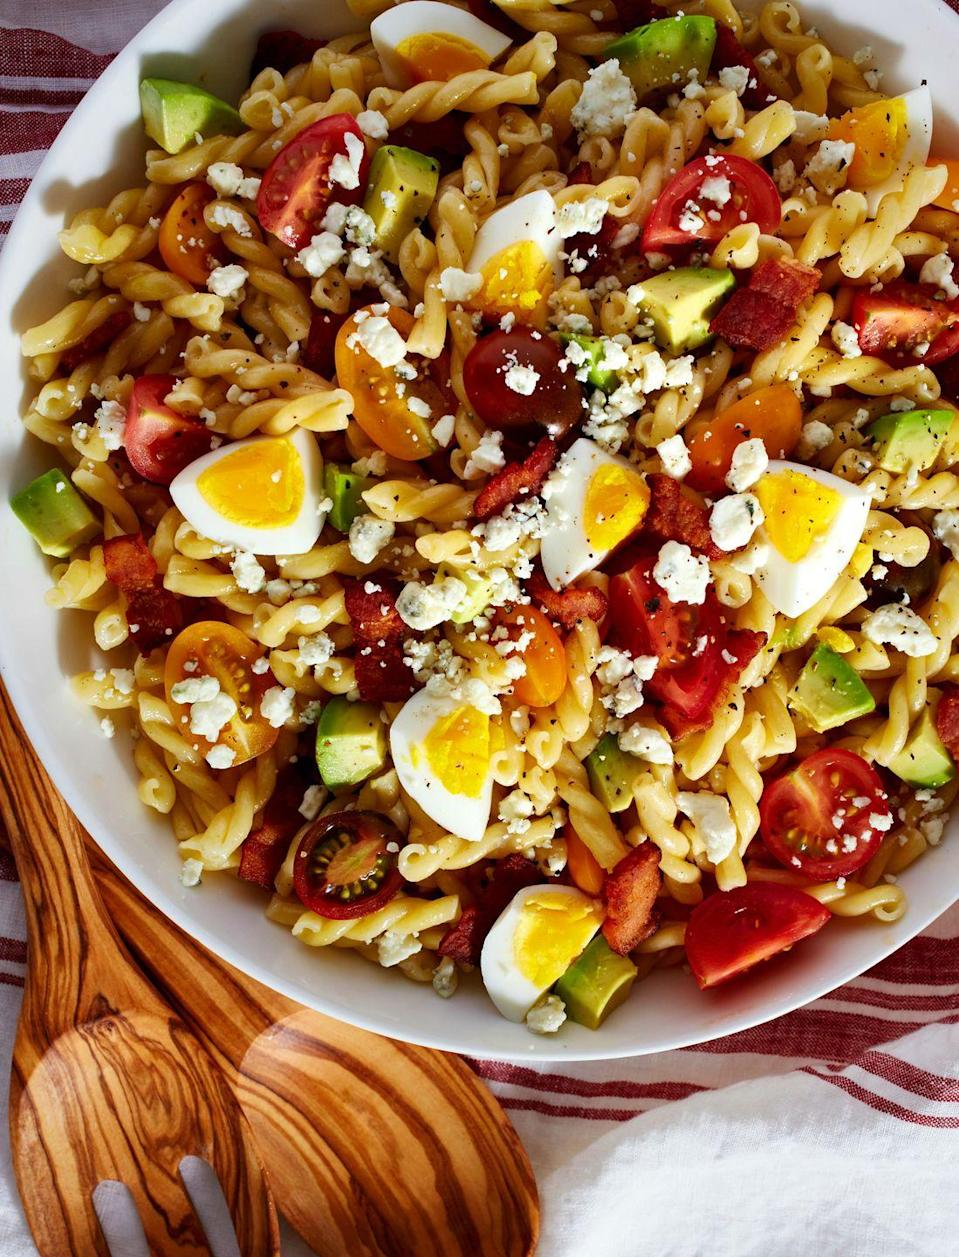 """<p>Your lunchtime favorite: pasta-ified.</p><p>Get the recipe from <a href=""""https://www.delish.com/cooking/recipe-ideas/recipes/a47989/cobb-pasta-salad-recipe/"""" rel=""""nofollow noopener"""" target=""""_blank"""" data-ylk=""""slk:Delish"""" class=""""link rapid-noclick-resp"""">Delish</a>.</p><p><a class=""""link rapid-noclick-resp"""" href=""""https://www.amazon.com/Wusthof-Classic-8-Inch-Chefs-Knife/dp/B00009ZK08/?tag=syn-yahoo-20&ascsubtag=%5Bartid%7C1782.g.4110%5Bsrc%7Cyahoo-us"""" rel=""""nofollow noopener"""" target=""""_blank"""" data-ylk=""""slk:BUY NOW"""">BUY NOW</a> Wusthof Chef's Knife, $95</p>"""